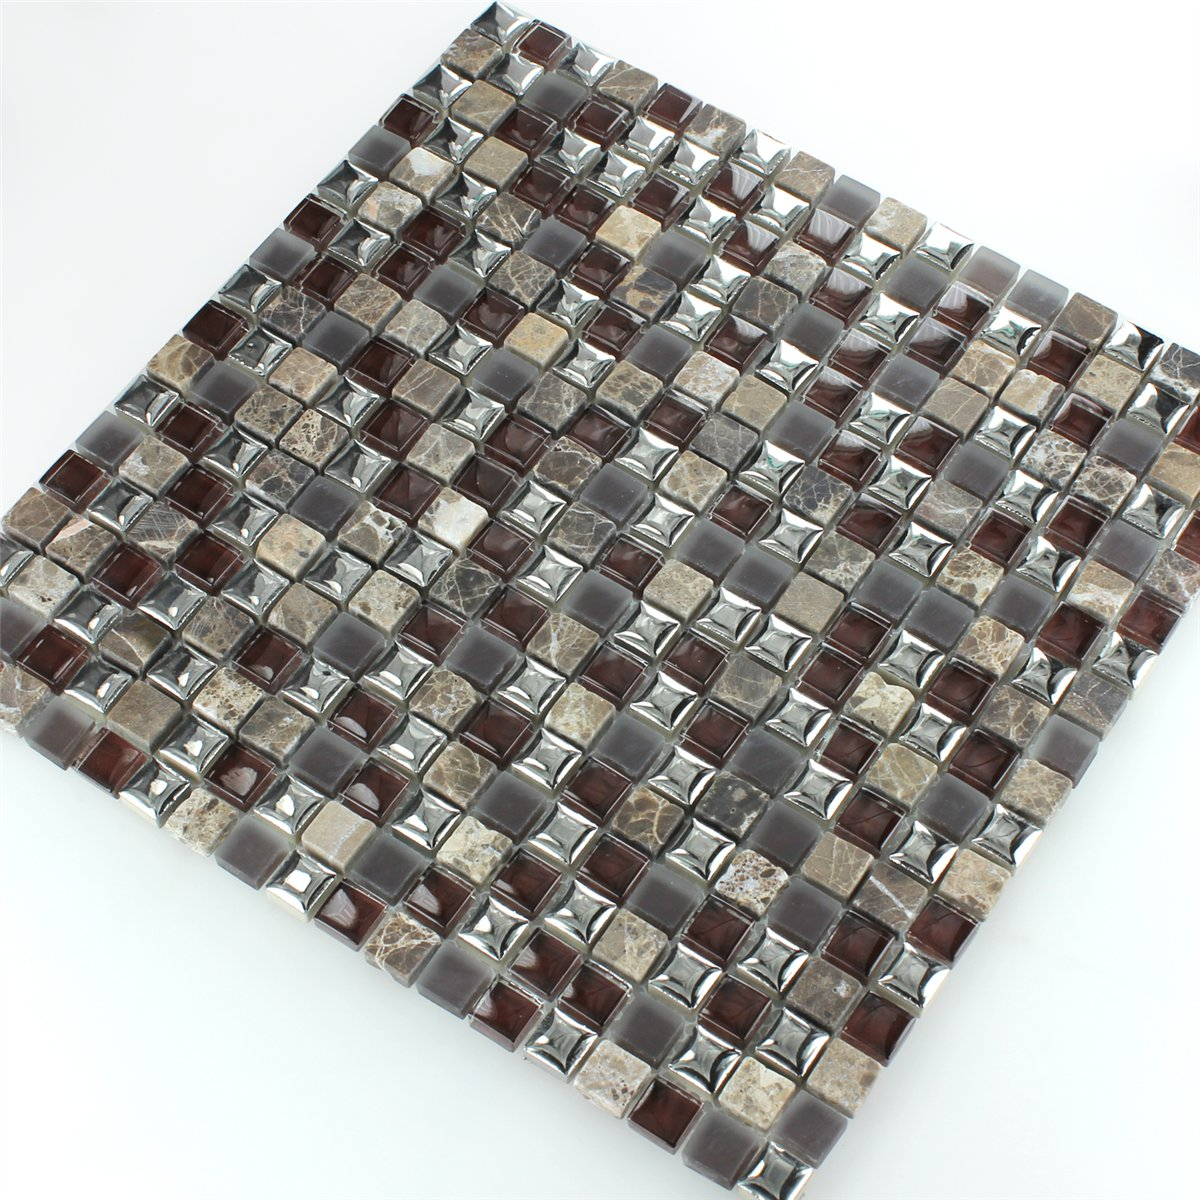 Glass Marble Ceramic Mosaic Tiles Brown Silver HT88305m